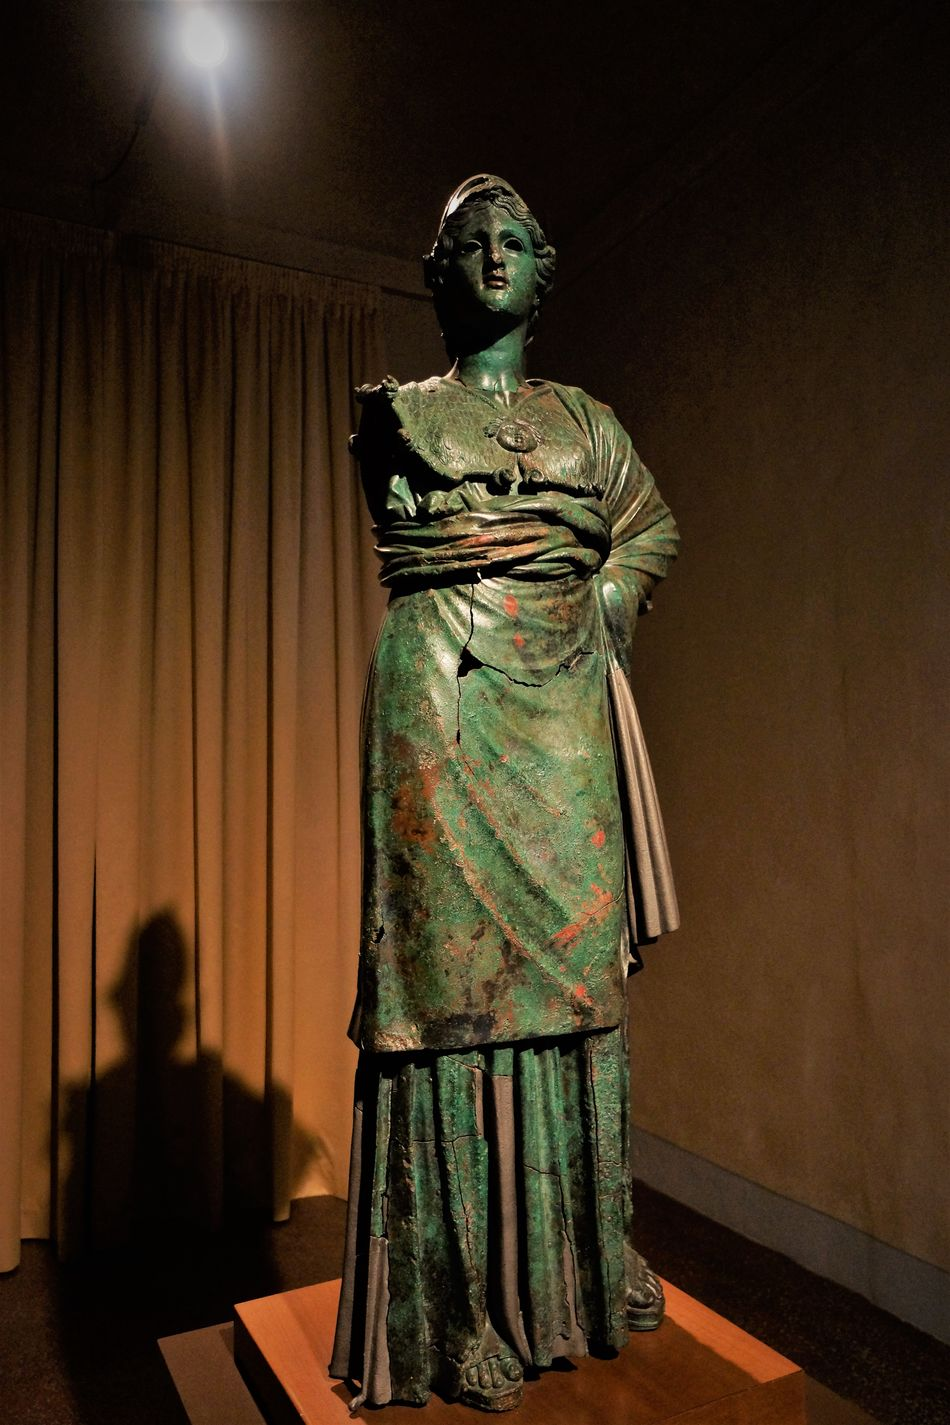 Museo Archeologico Arts Culture And Entertainment Bronce Etruscian Art Indoors  People Stage - Performance Space Standing Woman Statue